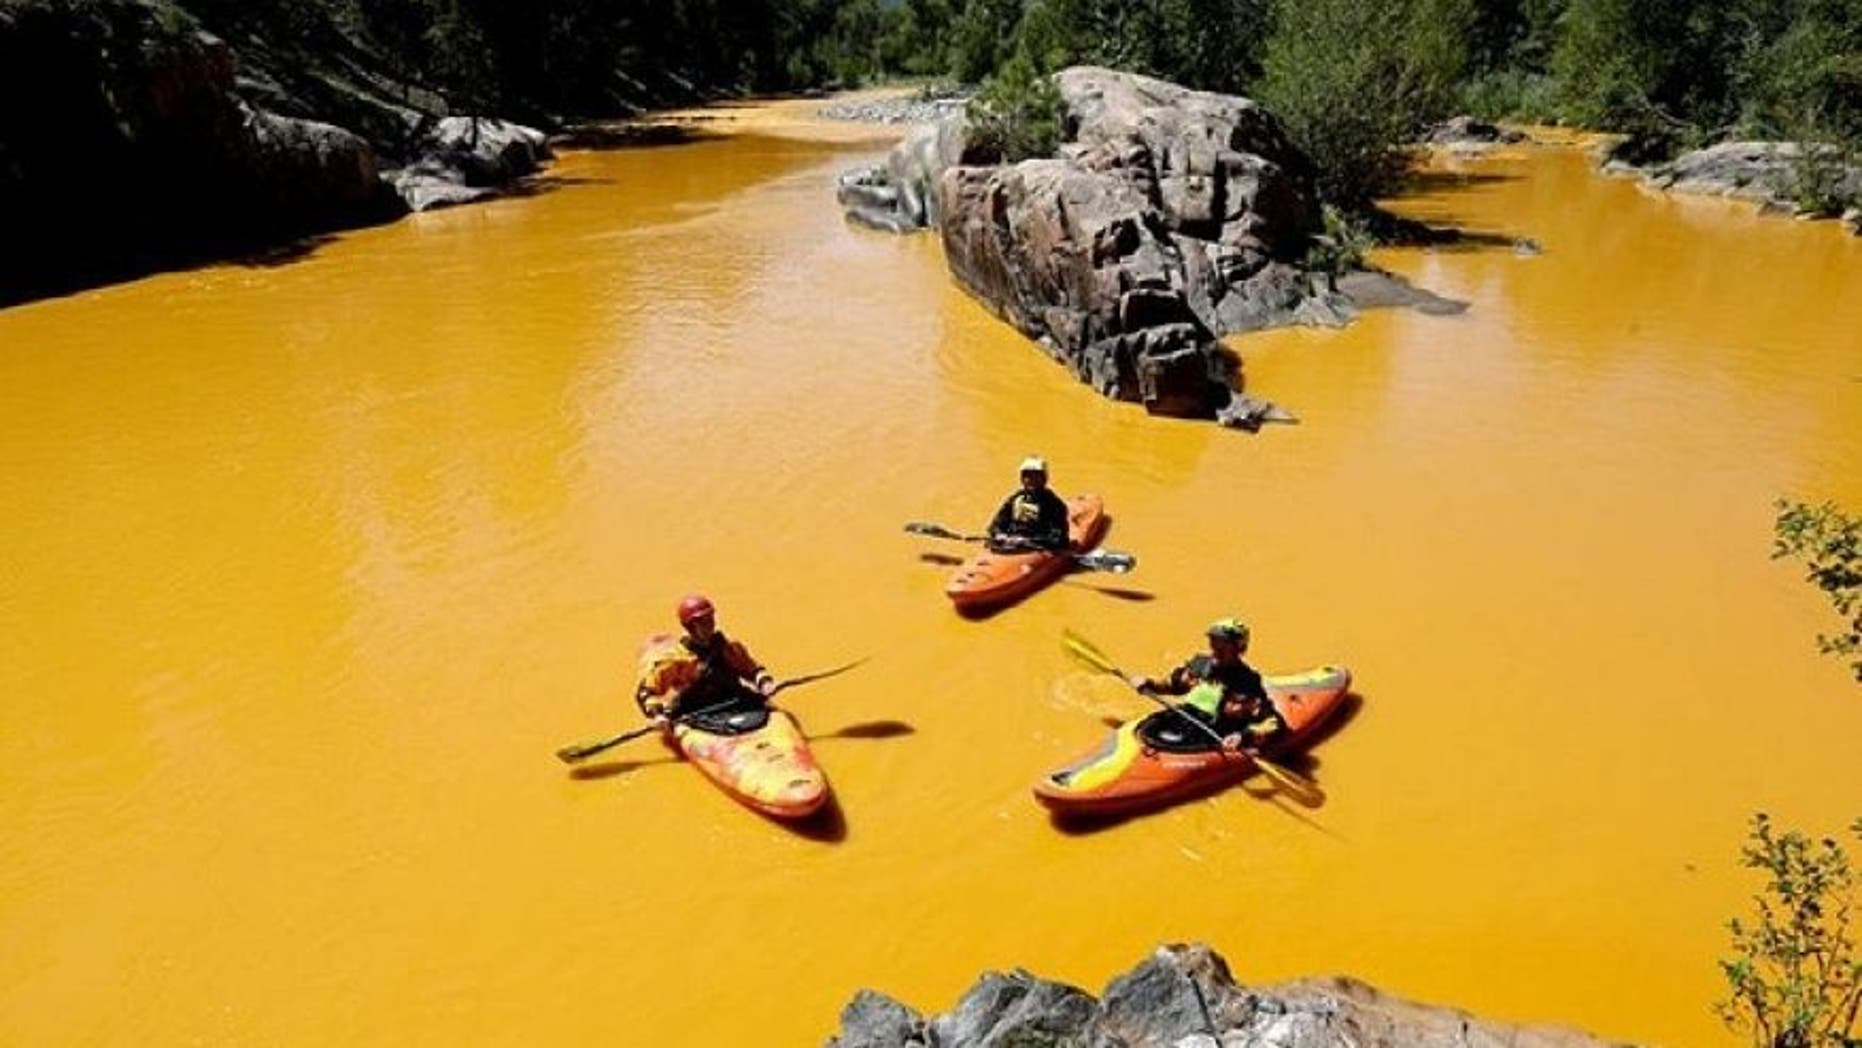 The House Committee on Natural Resources released a damning report on the EPA and how they handled the August 2015 Gold King Mine disaster in Colorado, and its aftermath. (AP)